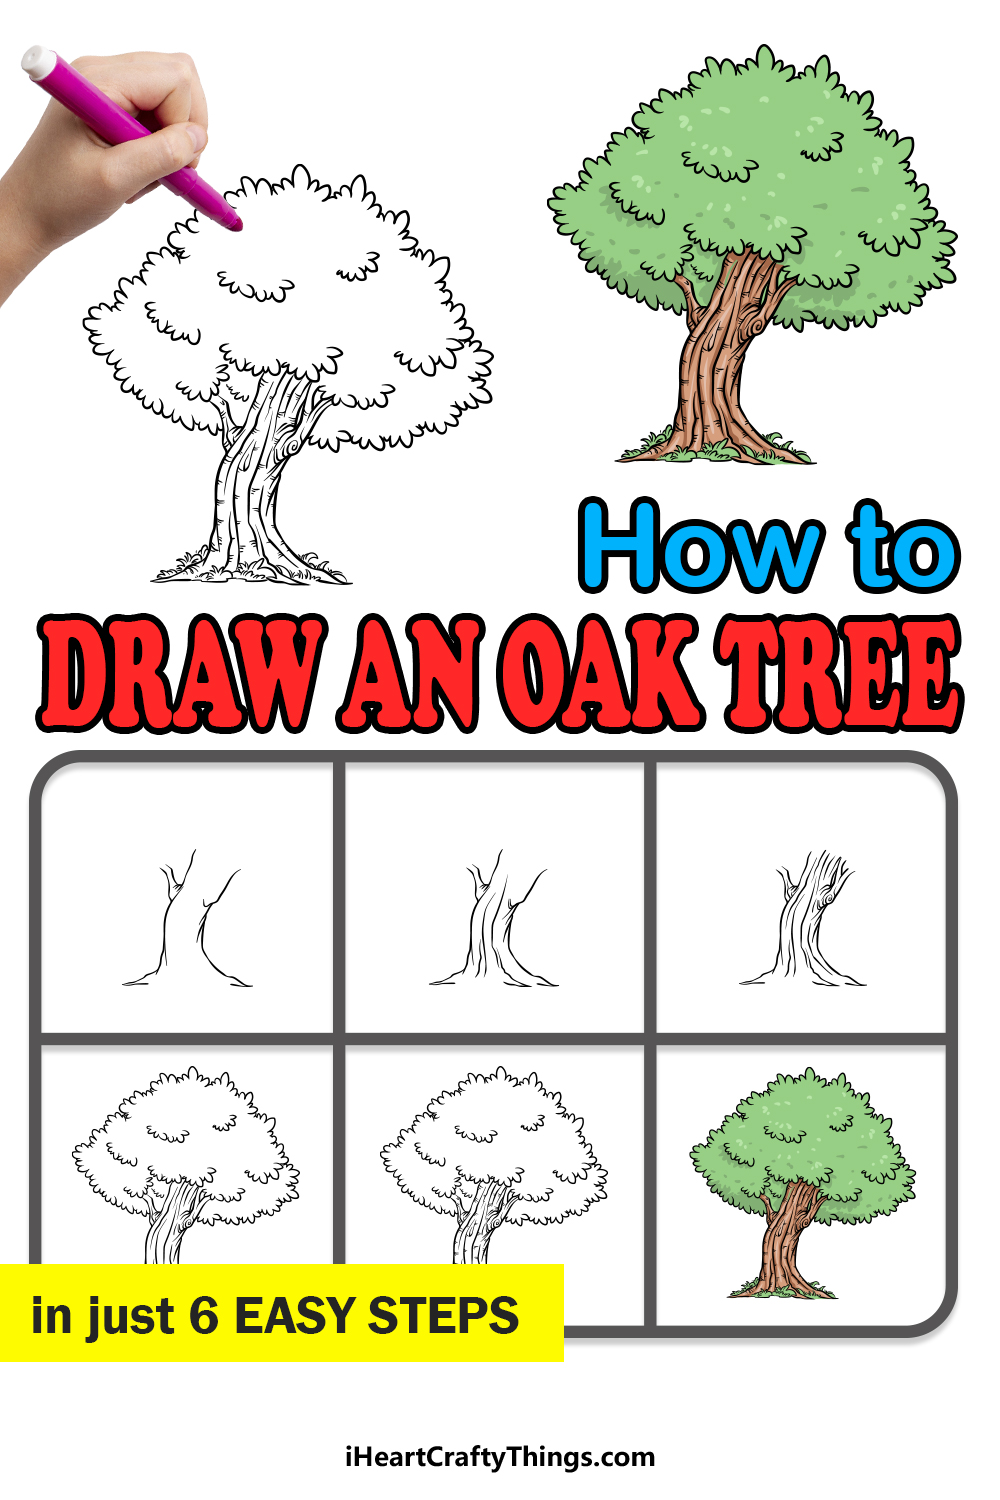 how to draw an oak tree in 6 easy steps